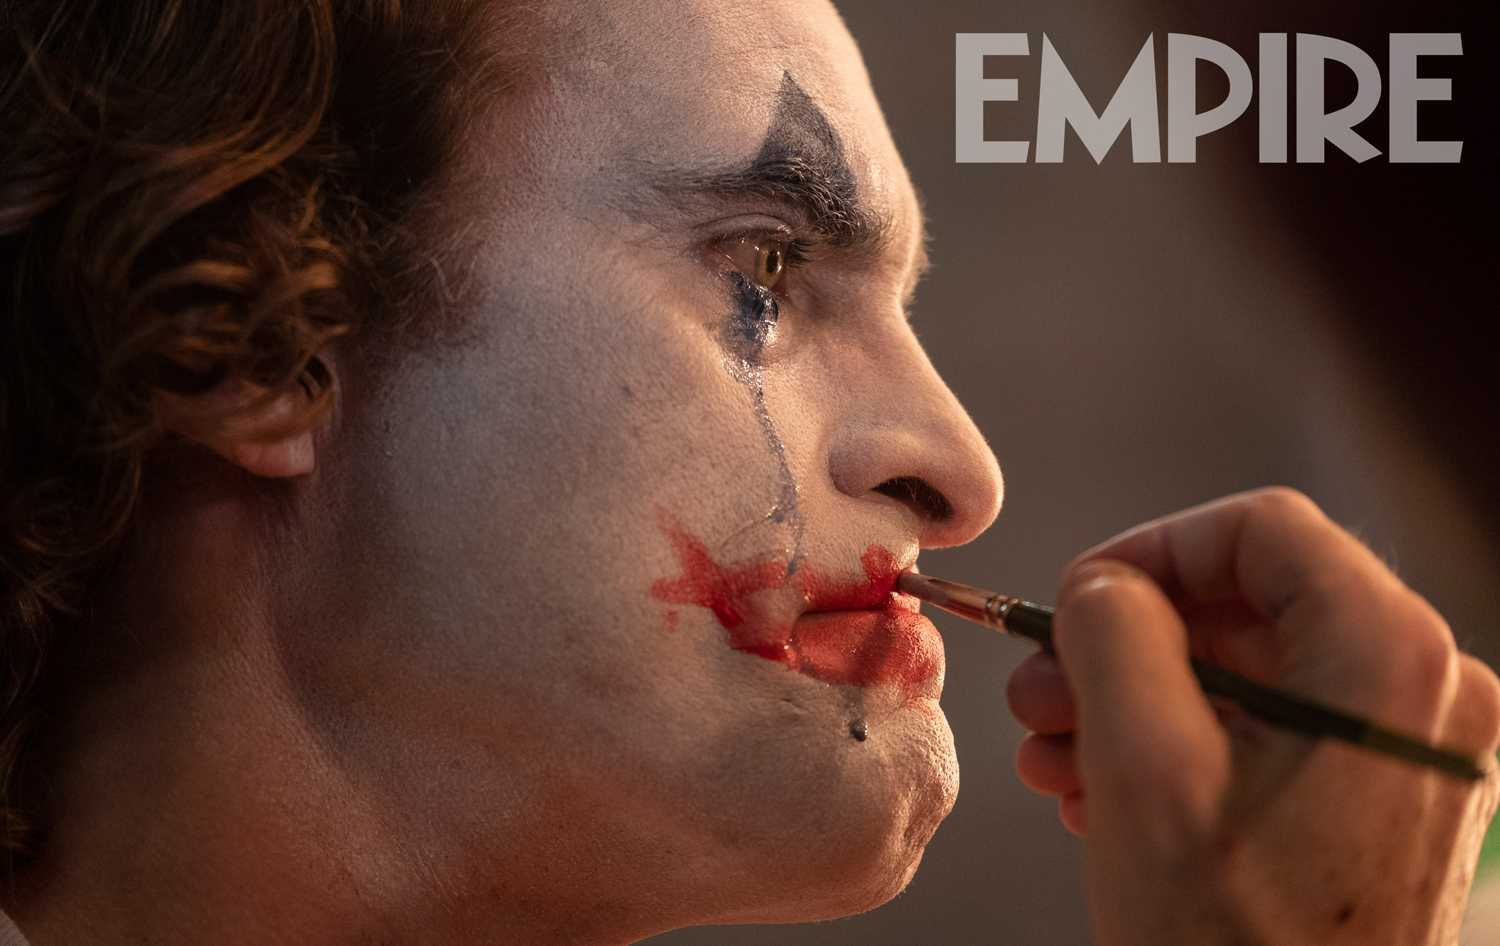 joker-empire-exclusive.jpgNew JOKER Images Shows Joaquin Phoenix as the Clown Prince of Crime and The Director Says The Movie Will Make Fans Mad1